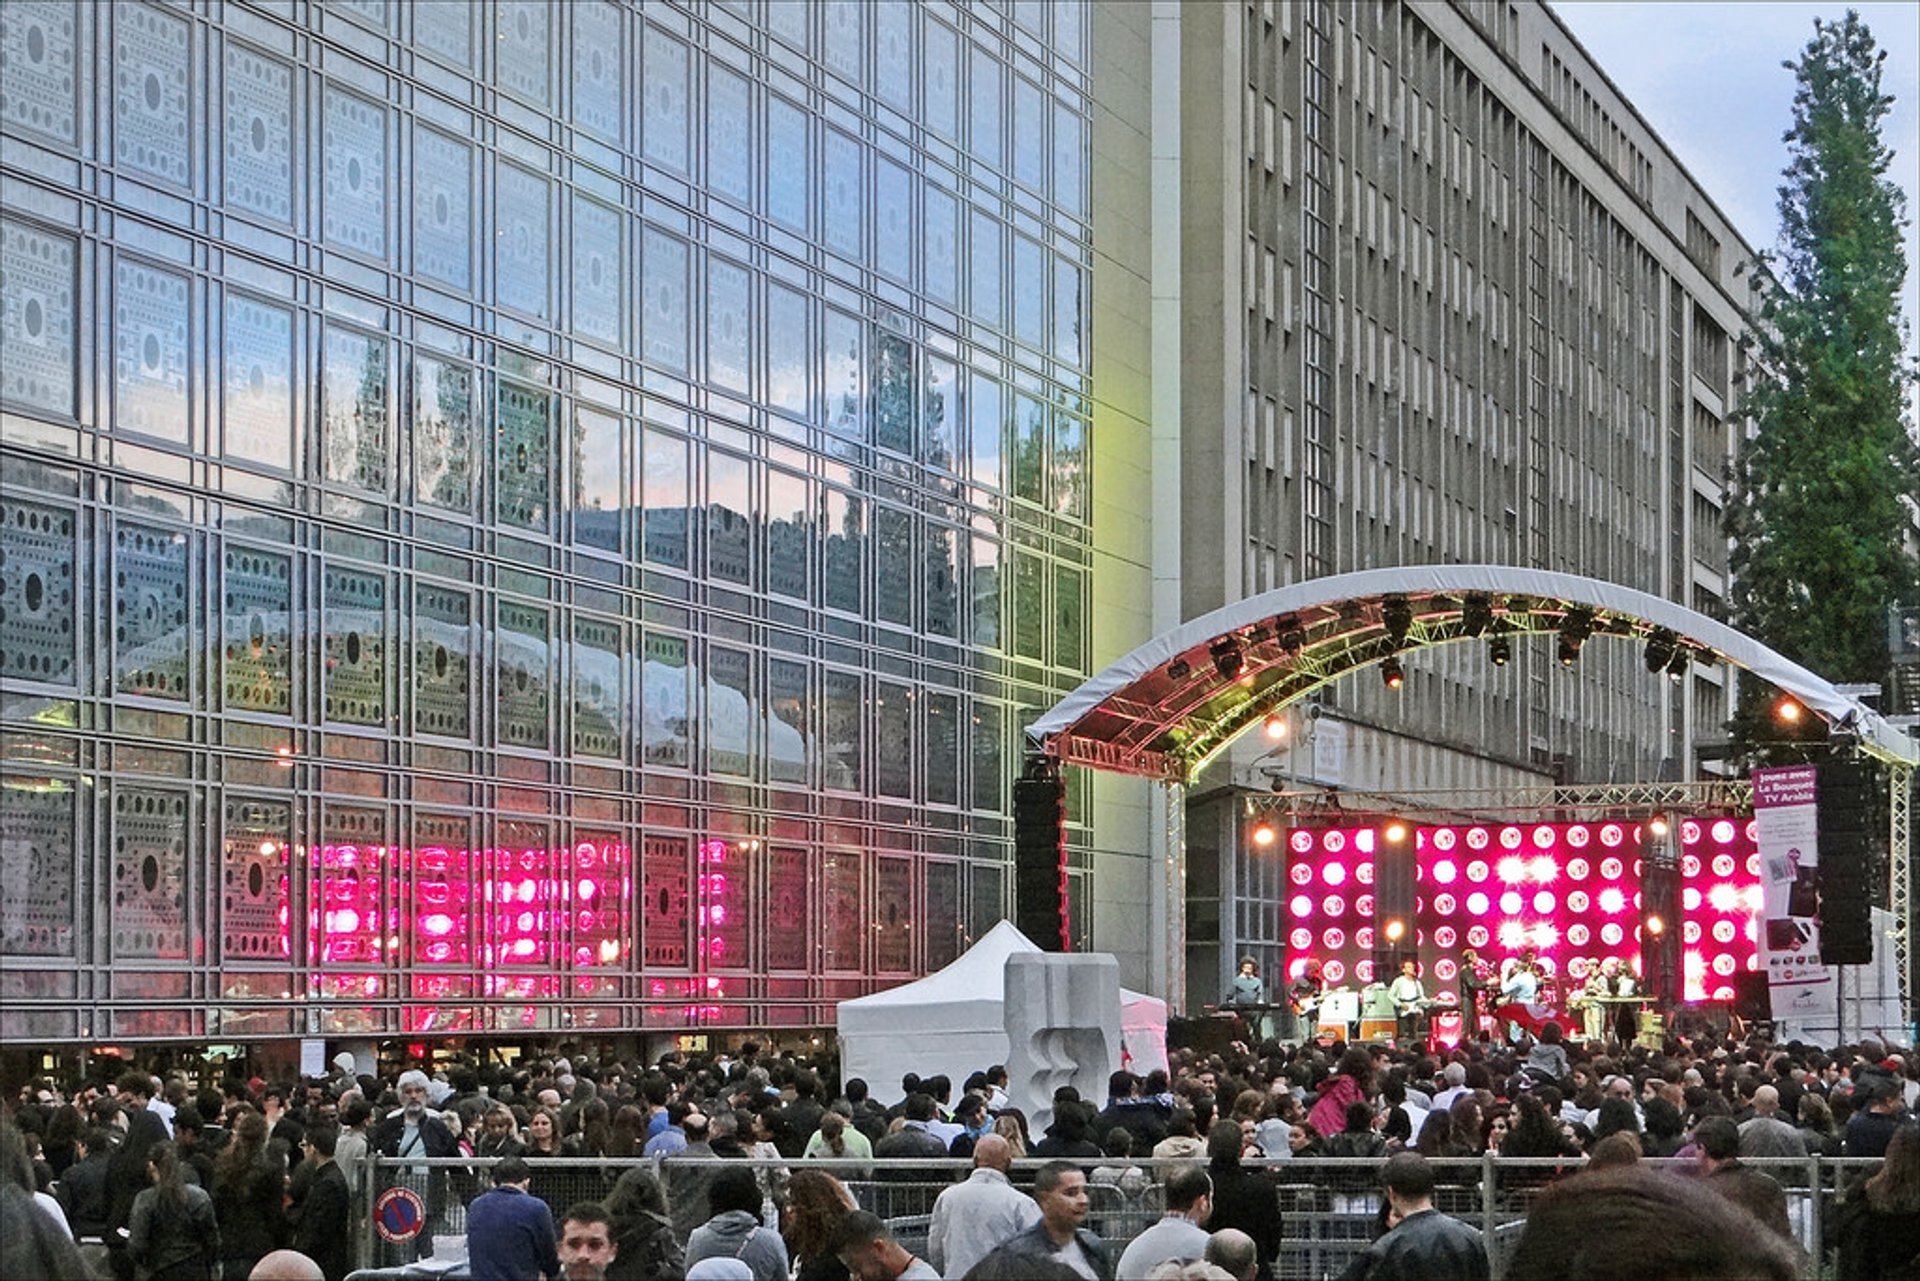 Fête de la Musique in Paris - Best Season 2020